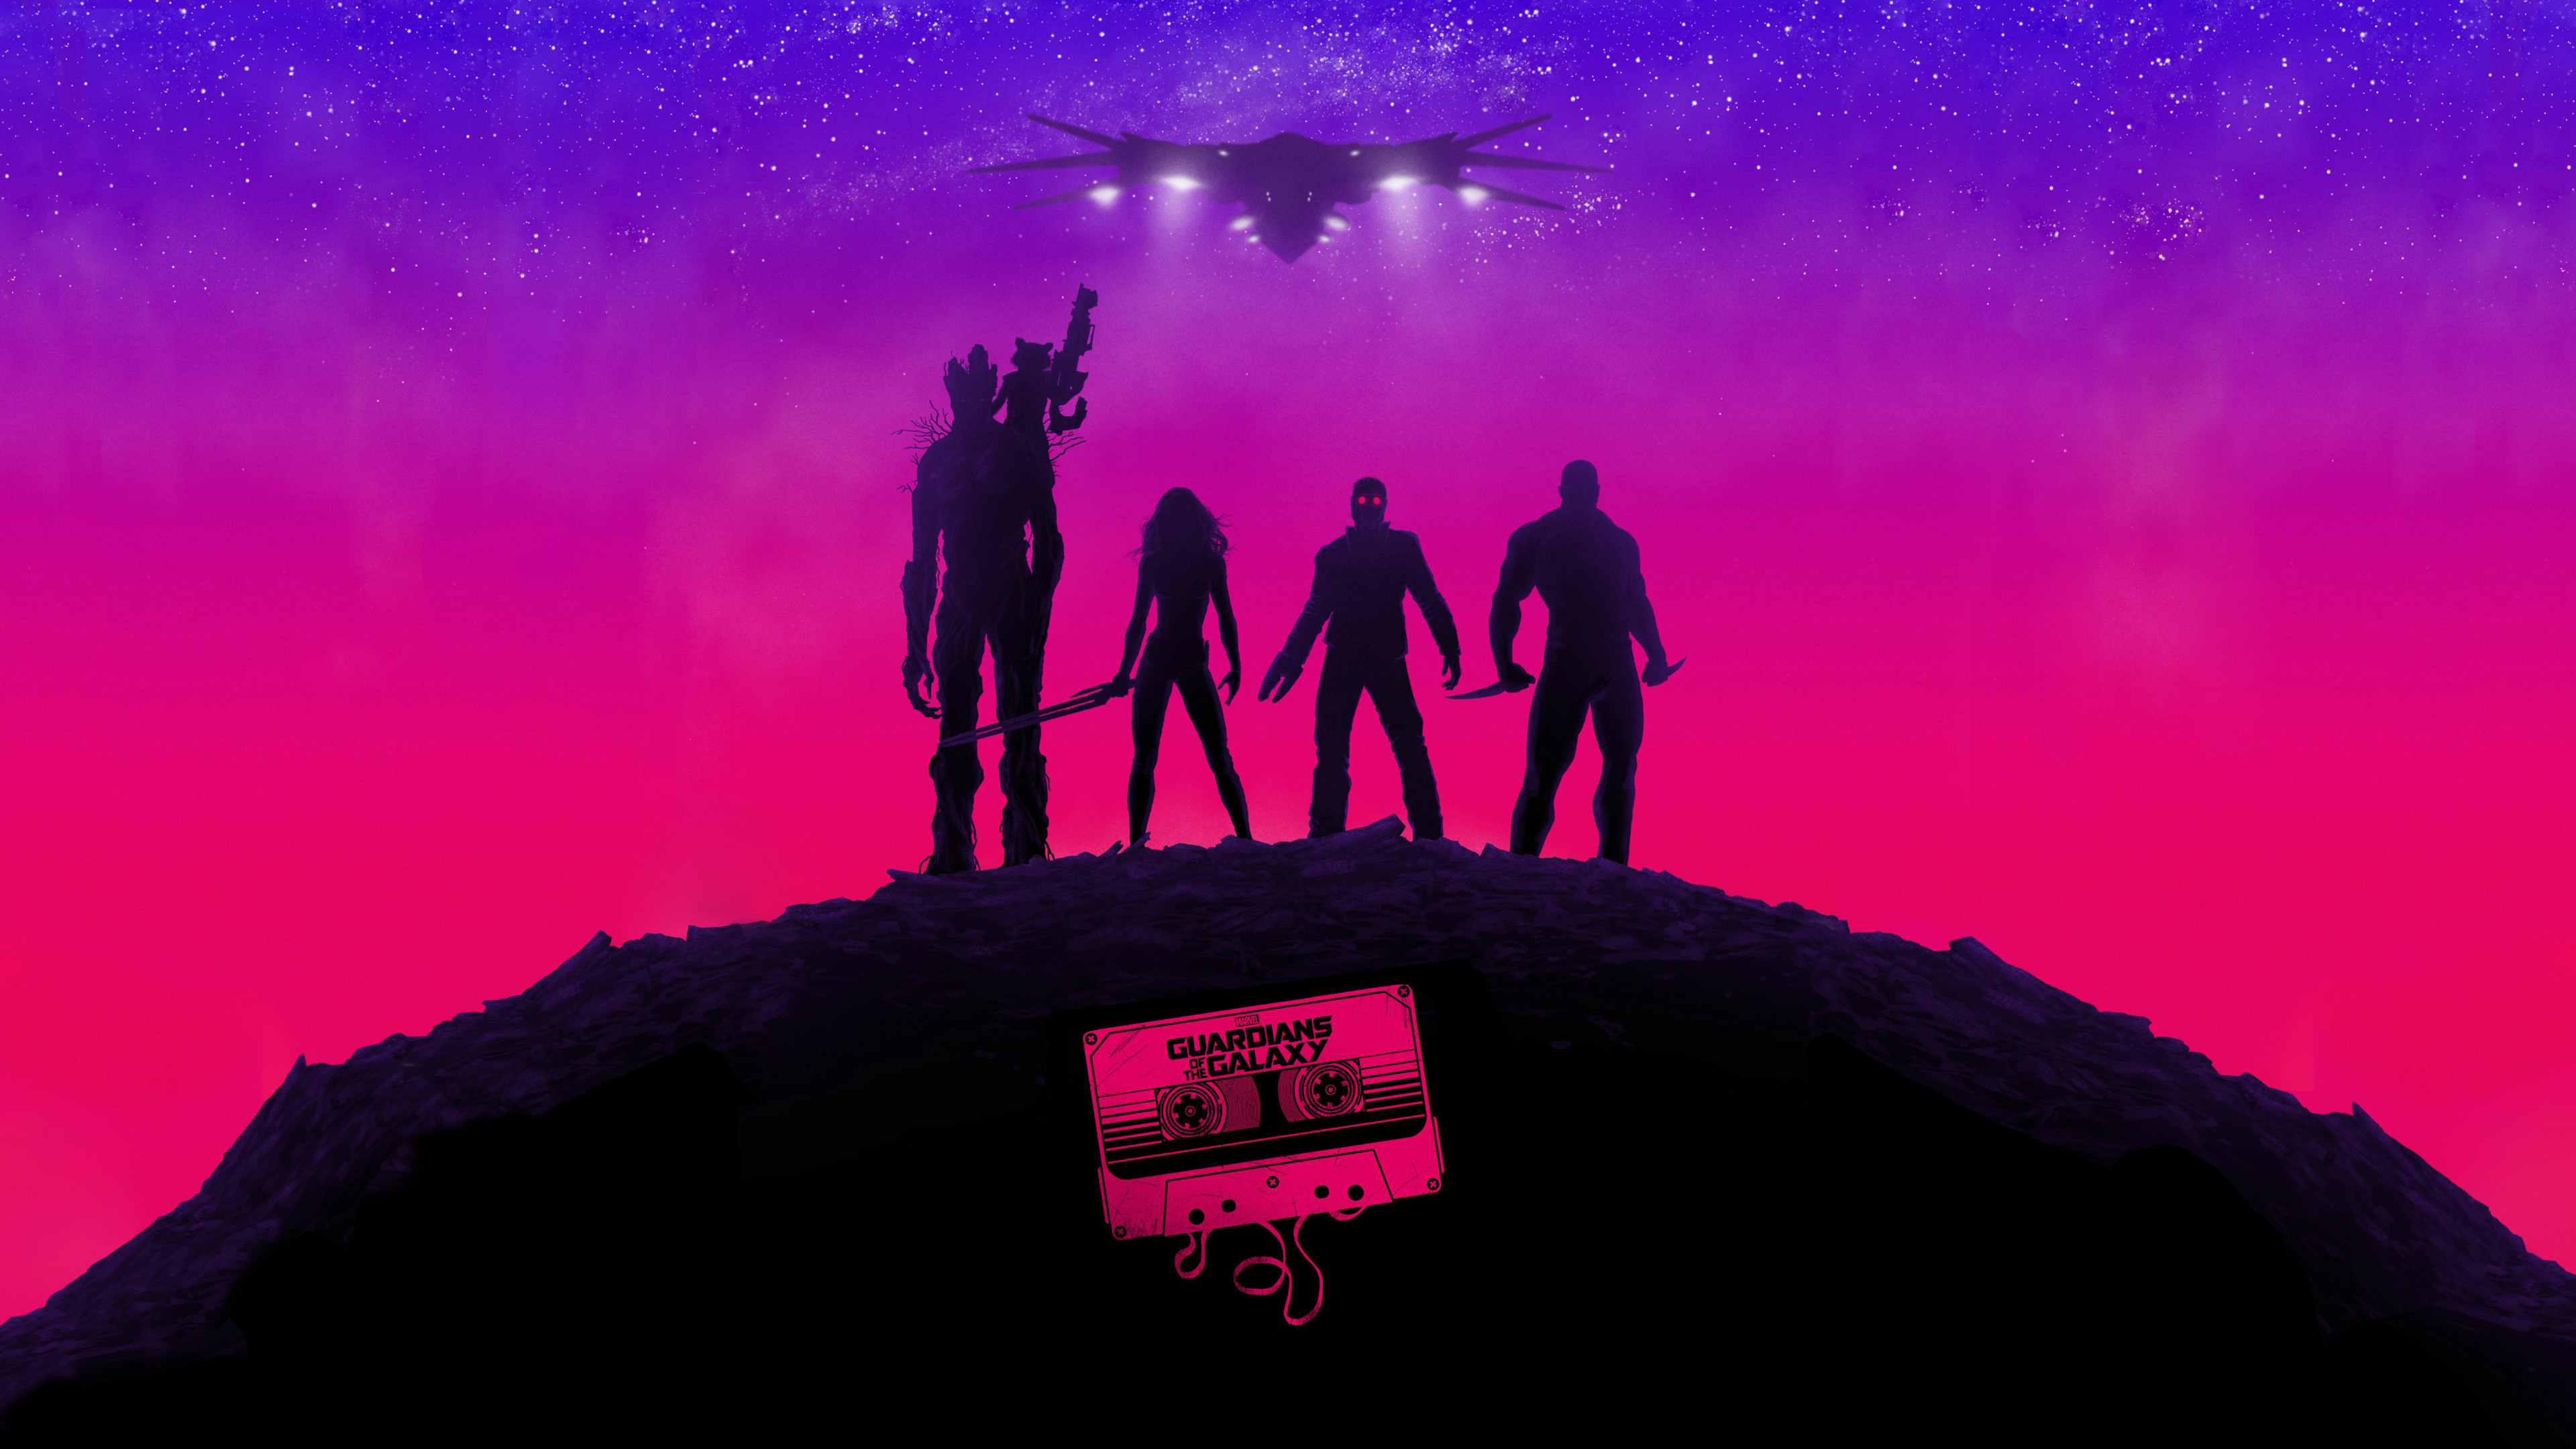 Guardians of the Galaxy wallpaper that I modded from one of the posters …